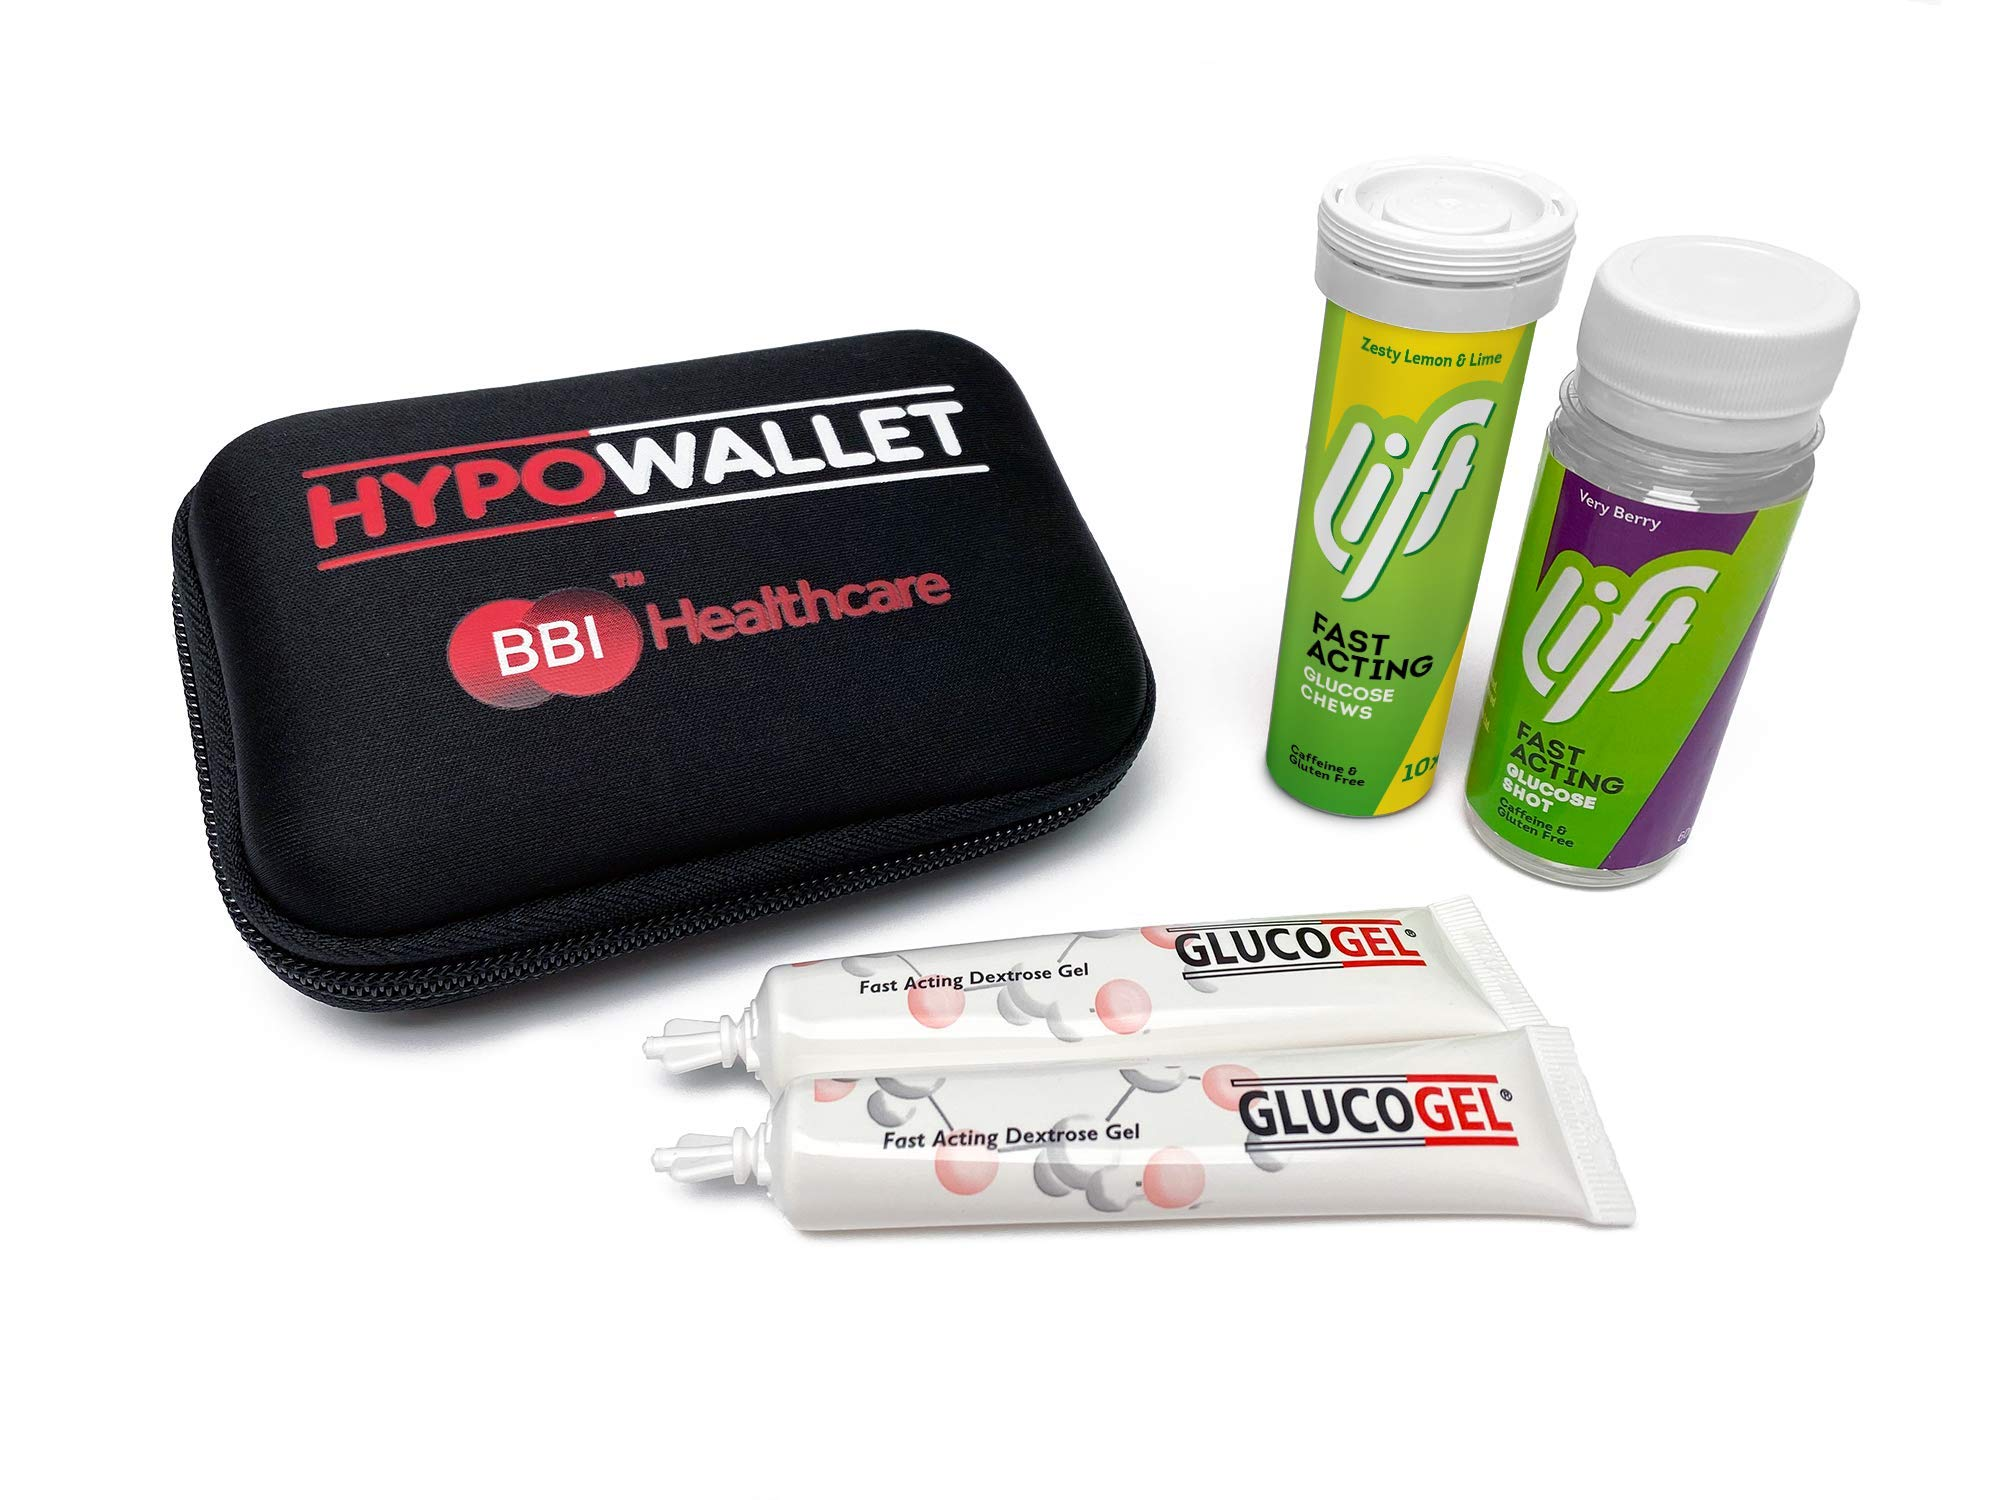 Hypowallet Hypo Wallet Contains Gluco Tabs, Gluco Juice & Gluco Gel, Fast Acting Glucose1 Units